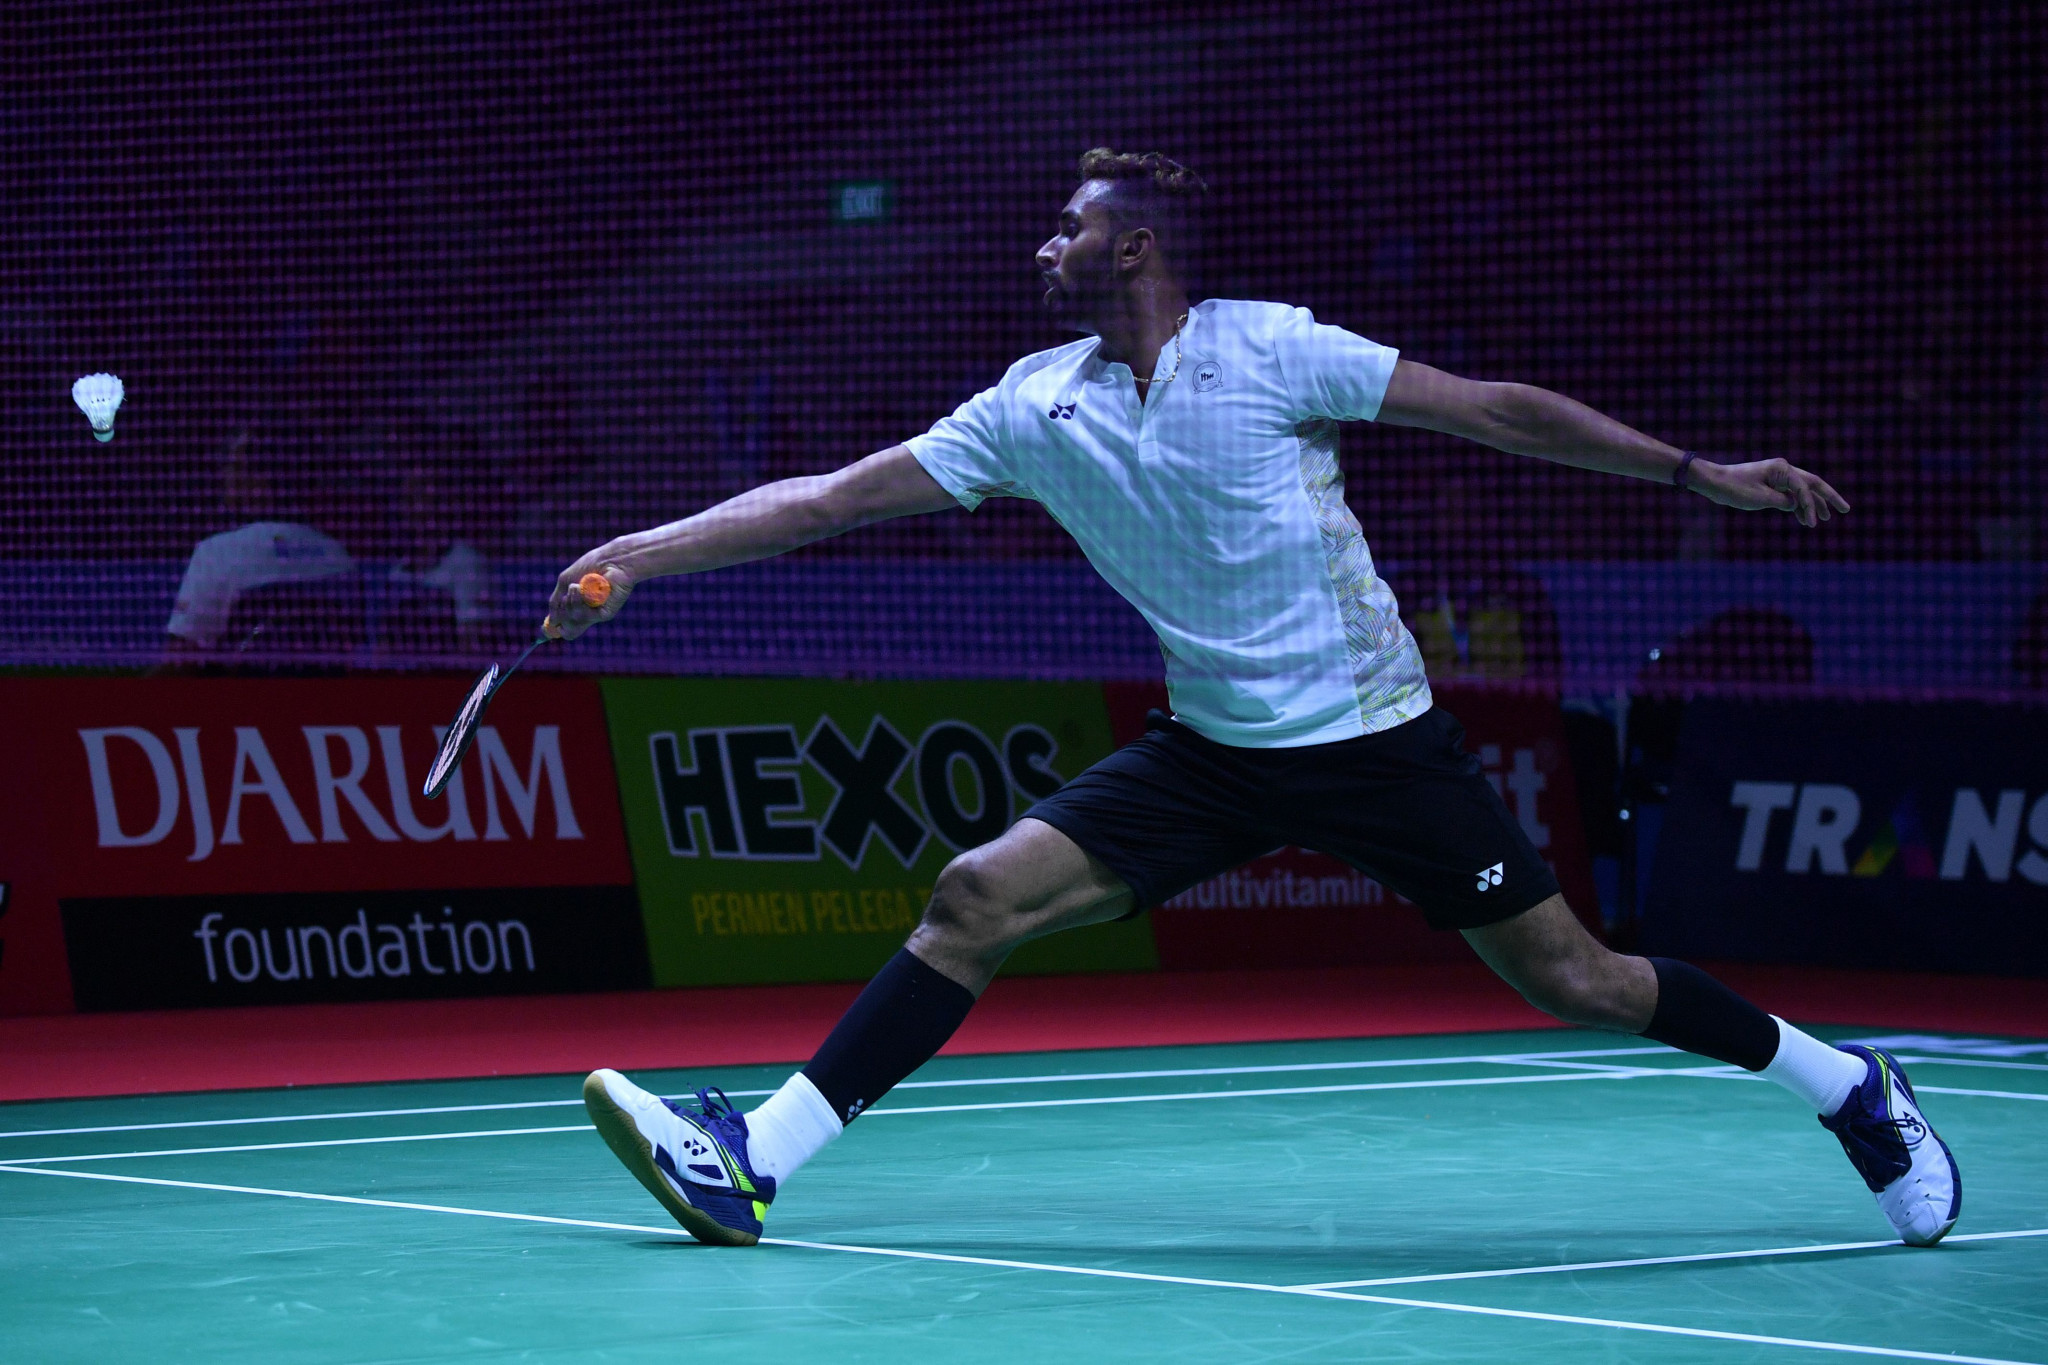 India's HS Prannoy was among the winners in the first round of the men's singles draw ©Getty Images